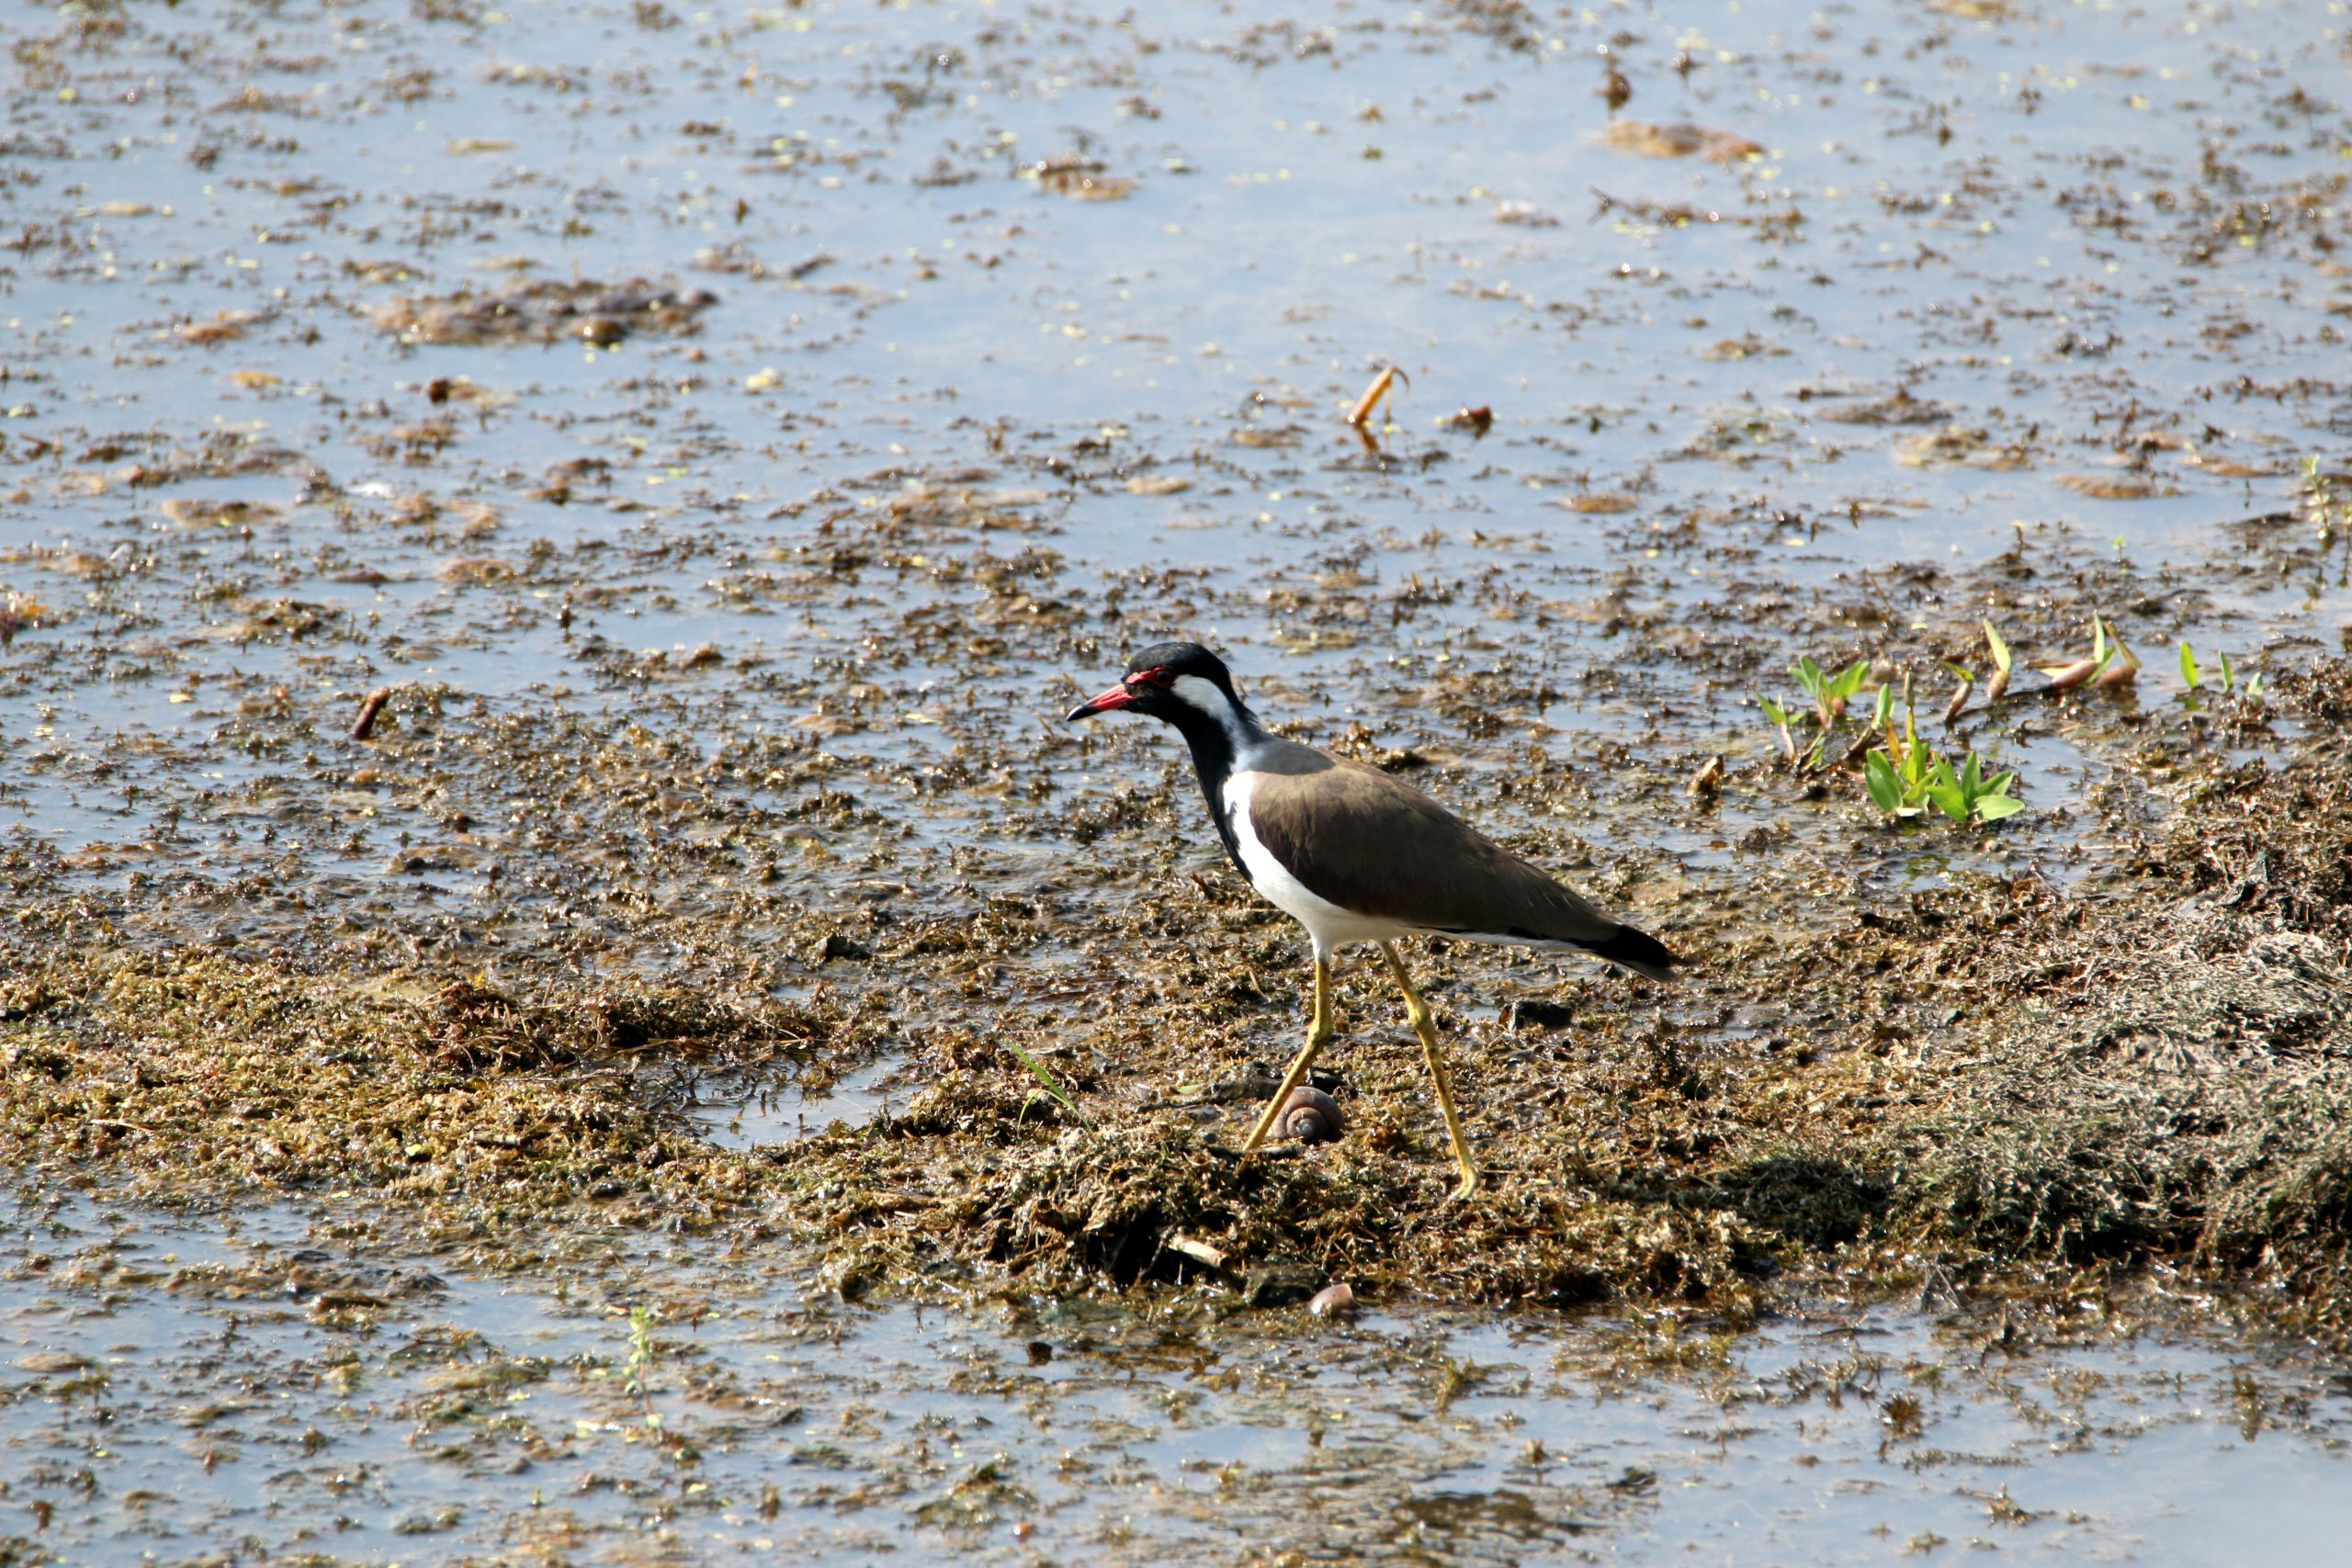 A lapwing in a pond